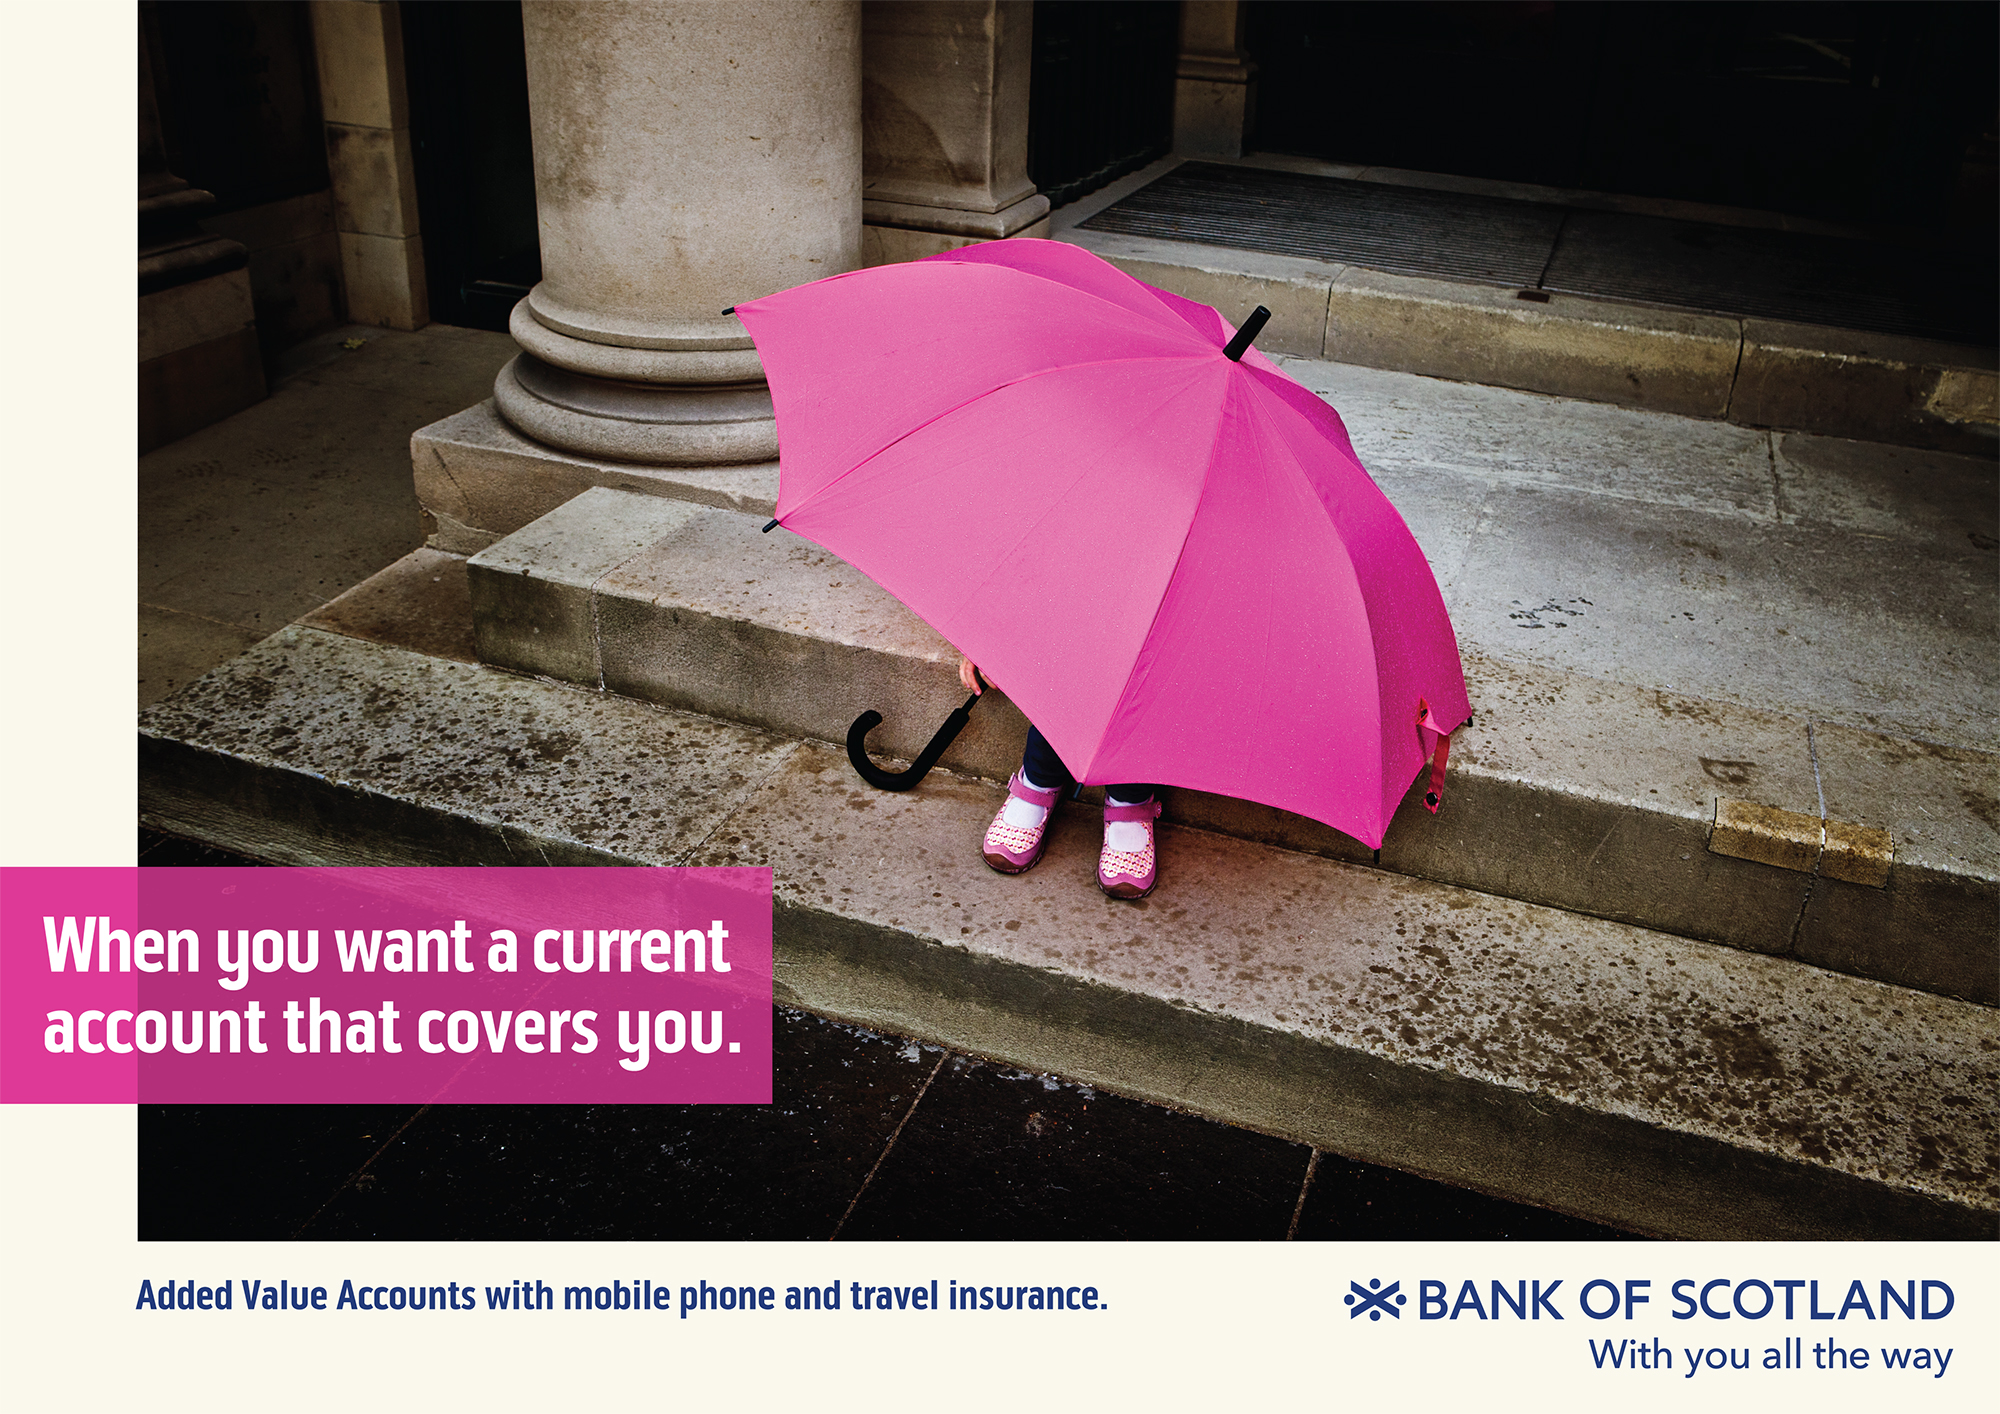 Bank of Scotland ADVERT